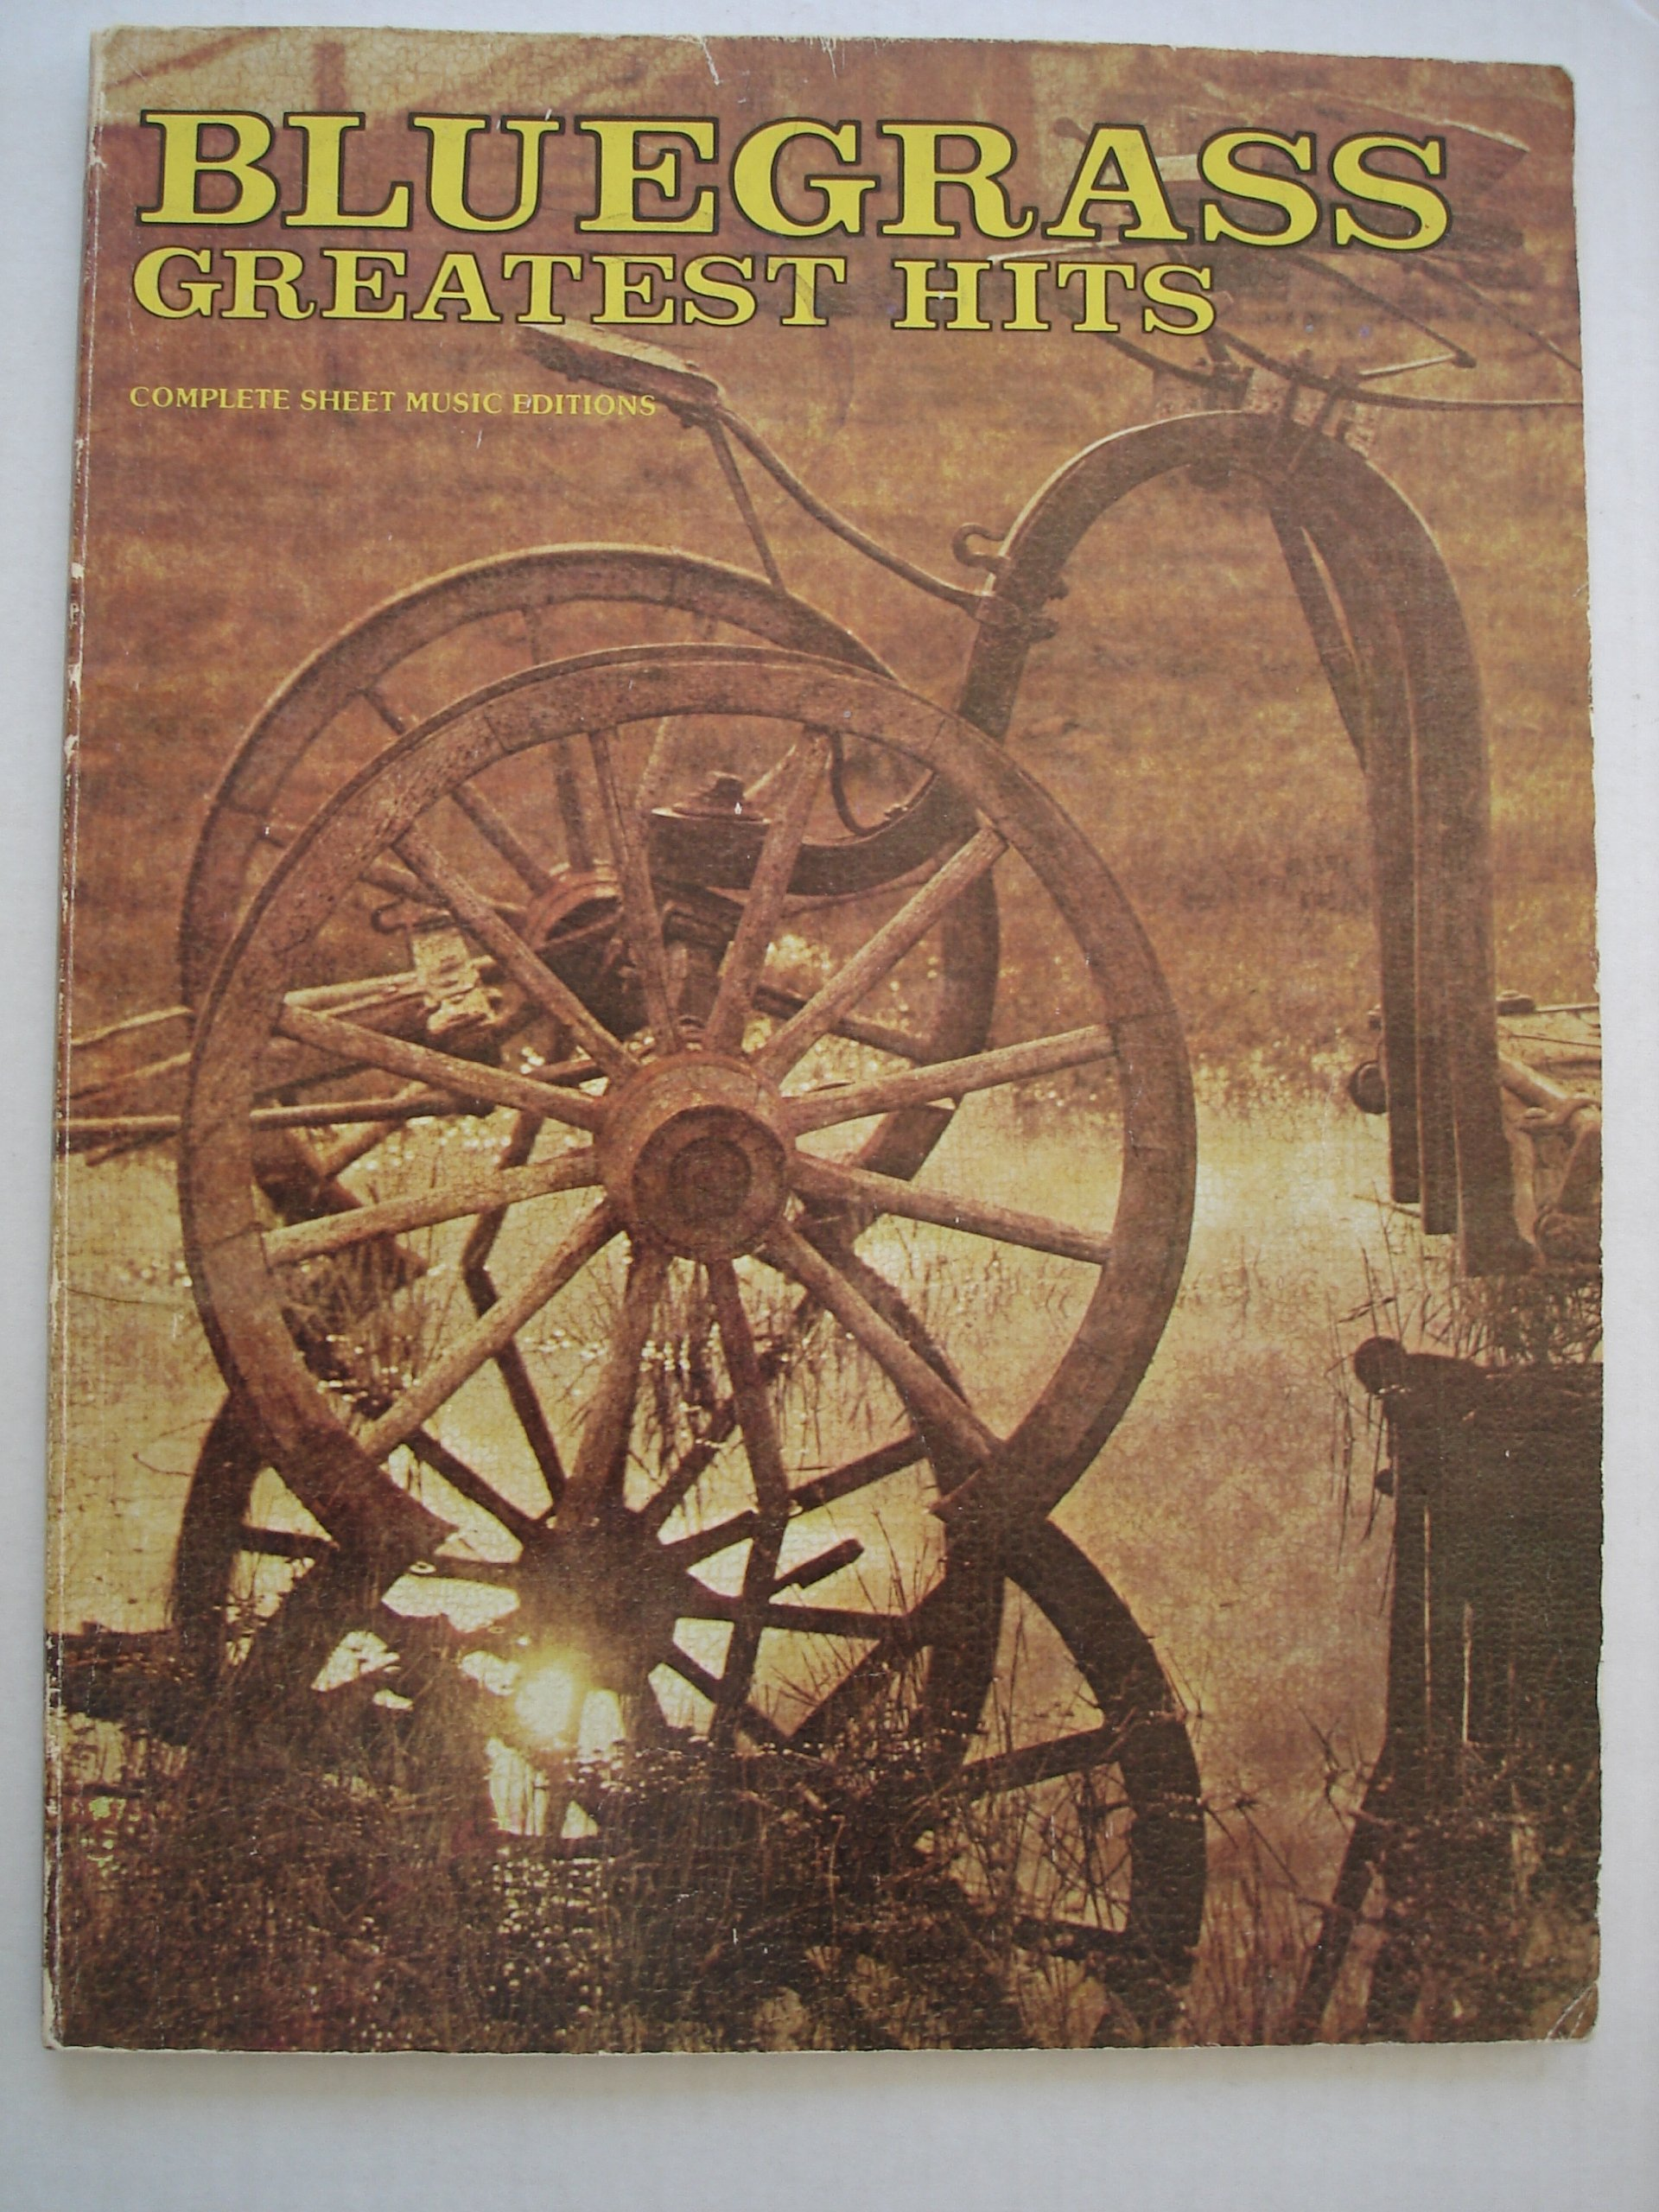 Bluegrass Greatest Hits, Complete Sheet Music Editions